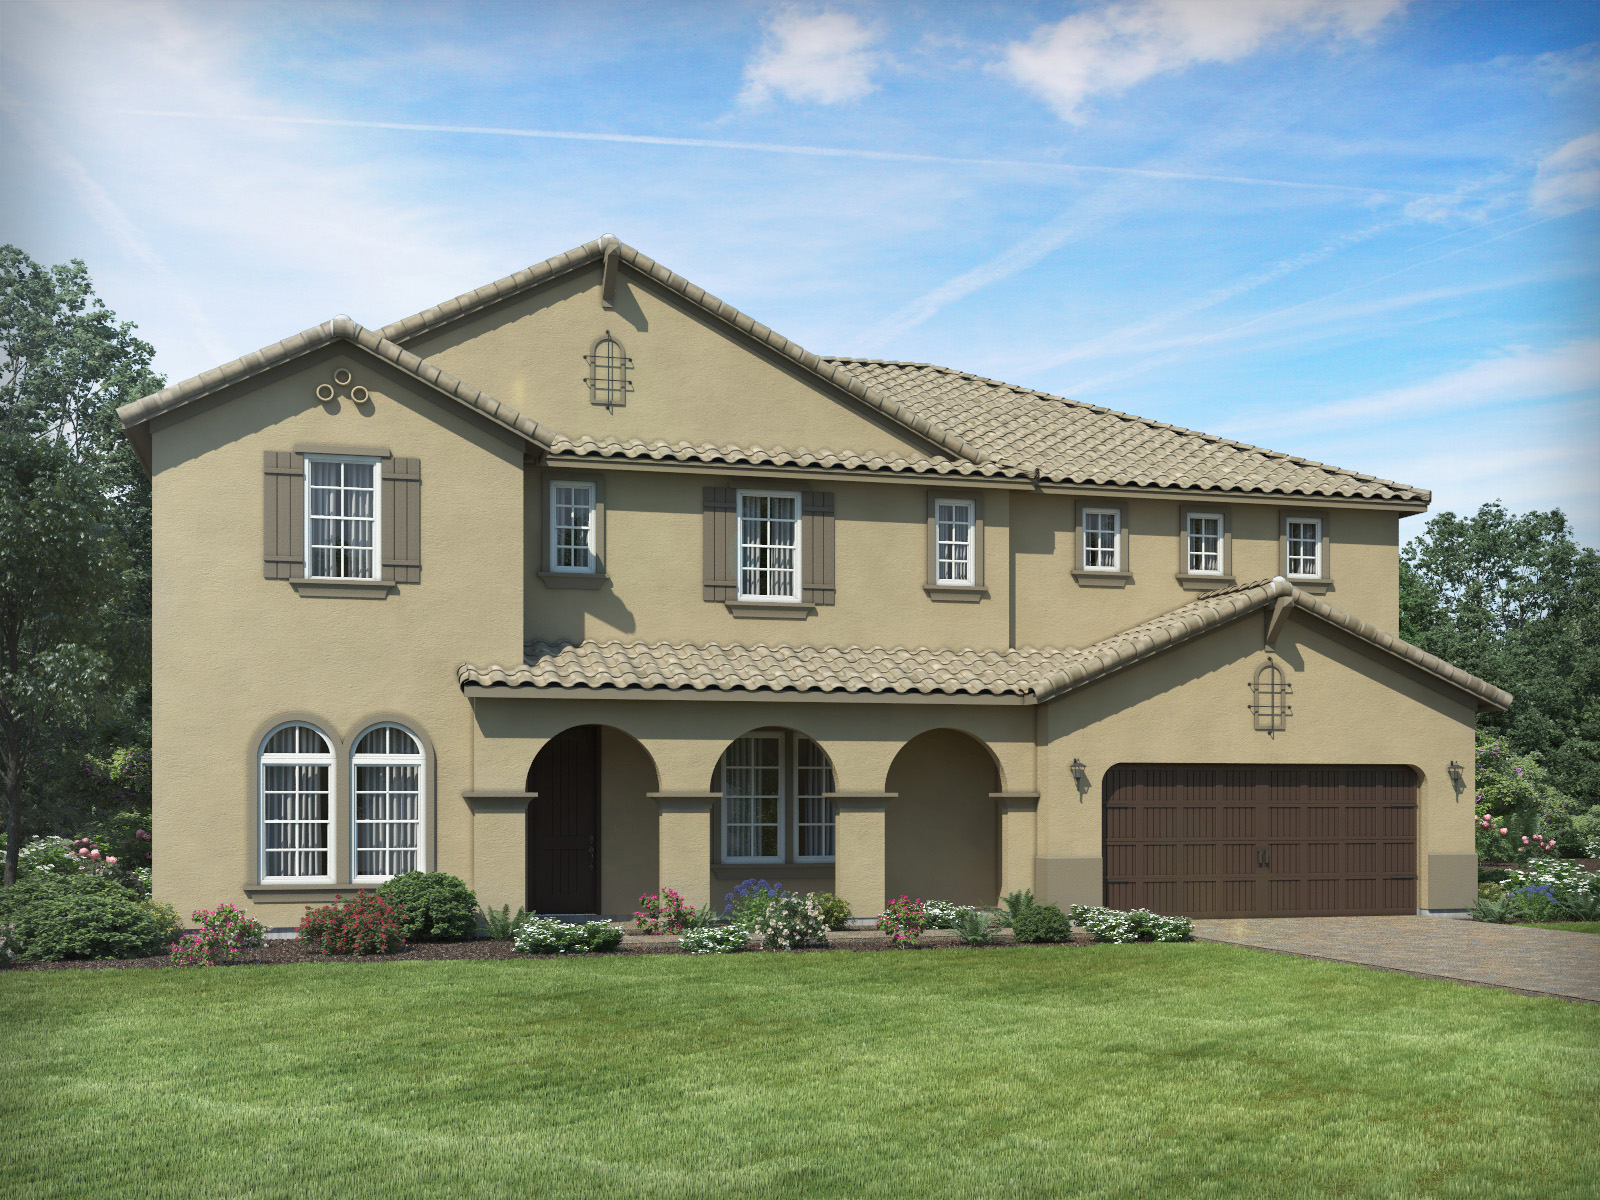 Estates at Parkside by Meritage Homes | New Homes for sale